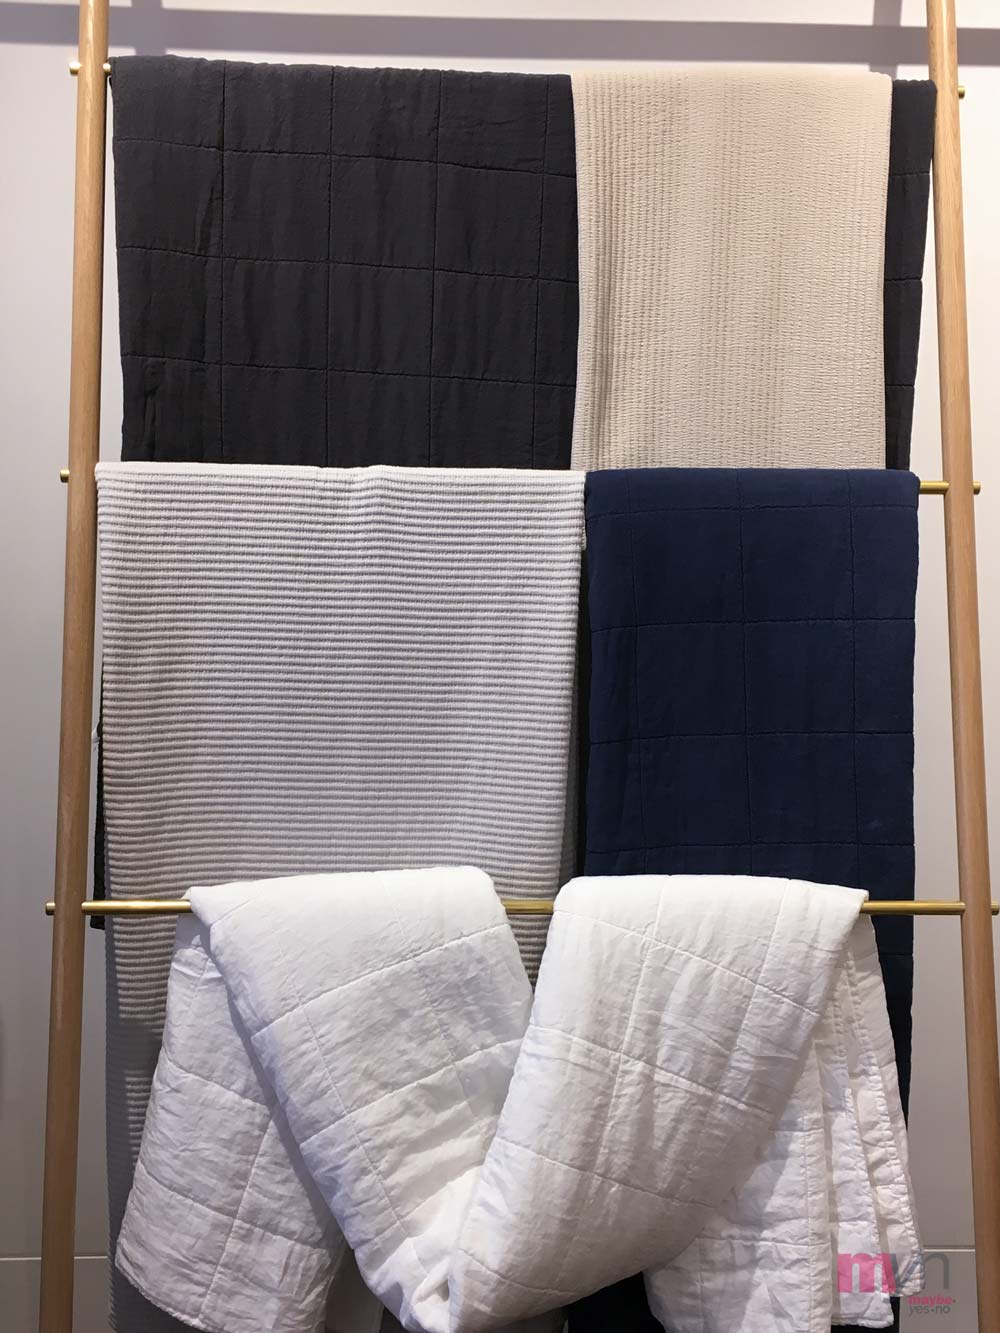 LINEN PARACHUTE QUILTS  IN WHITE, NAVY & CHARCOAL &  MATELASSE COVERLETS